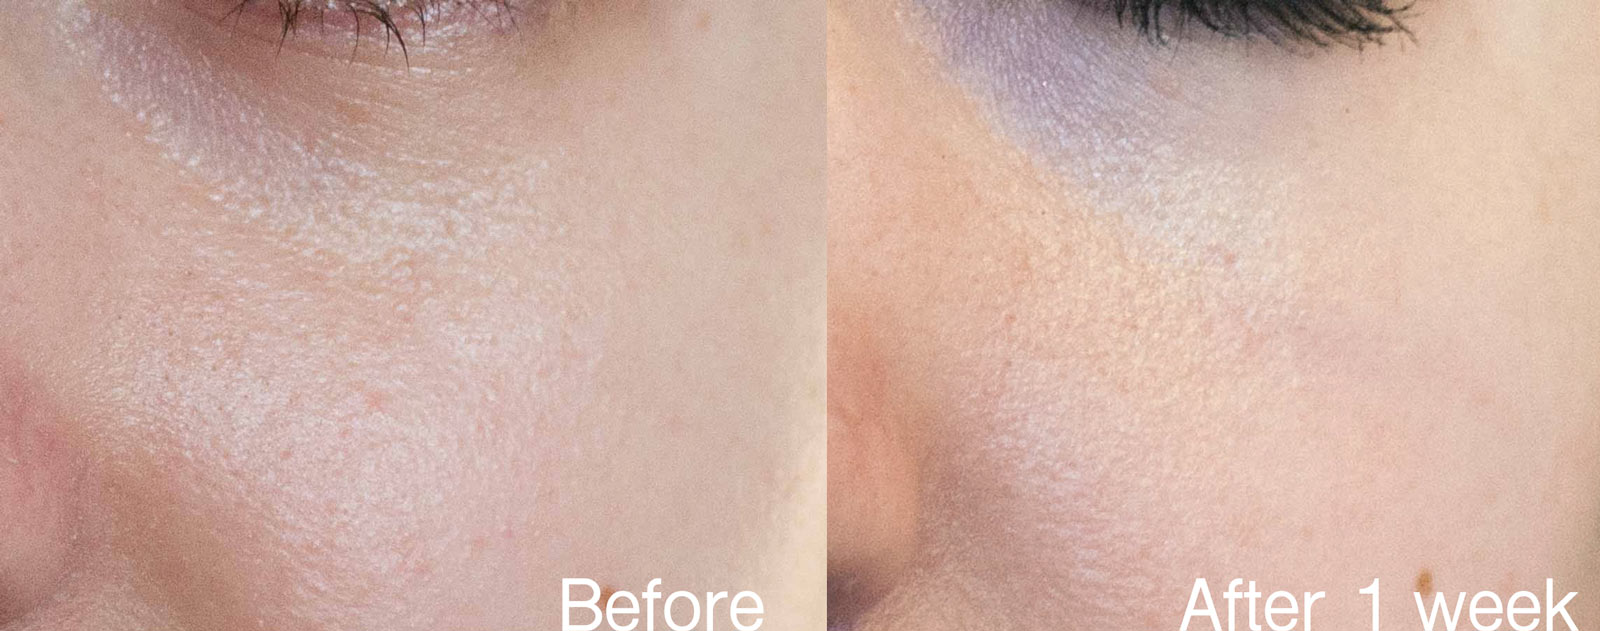 Strivectin advanced retinol pore refiner before and after